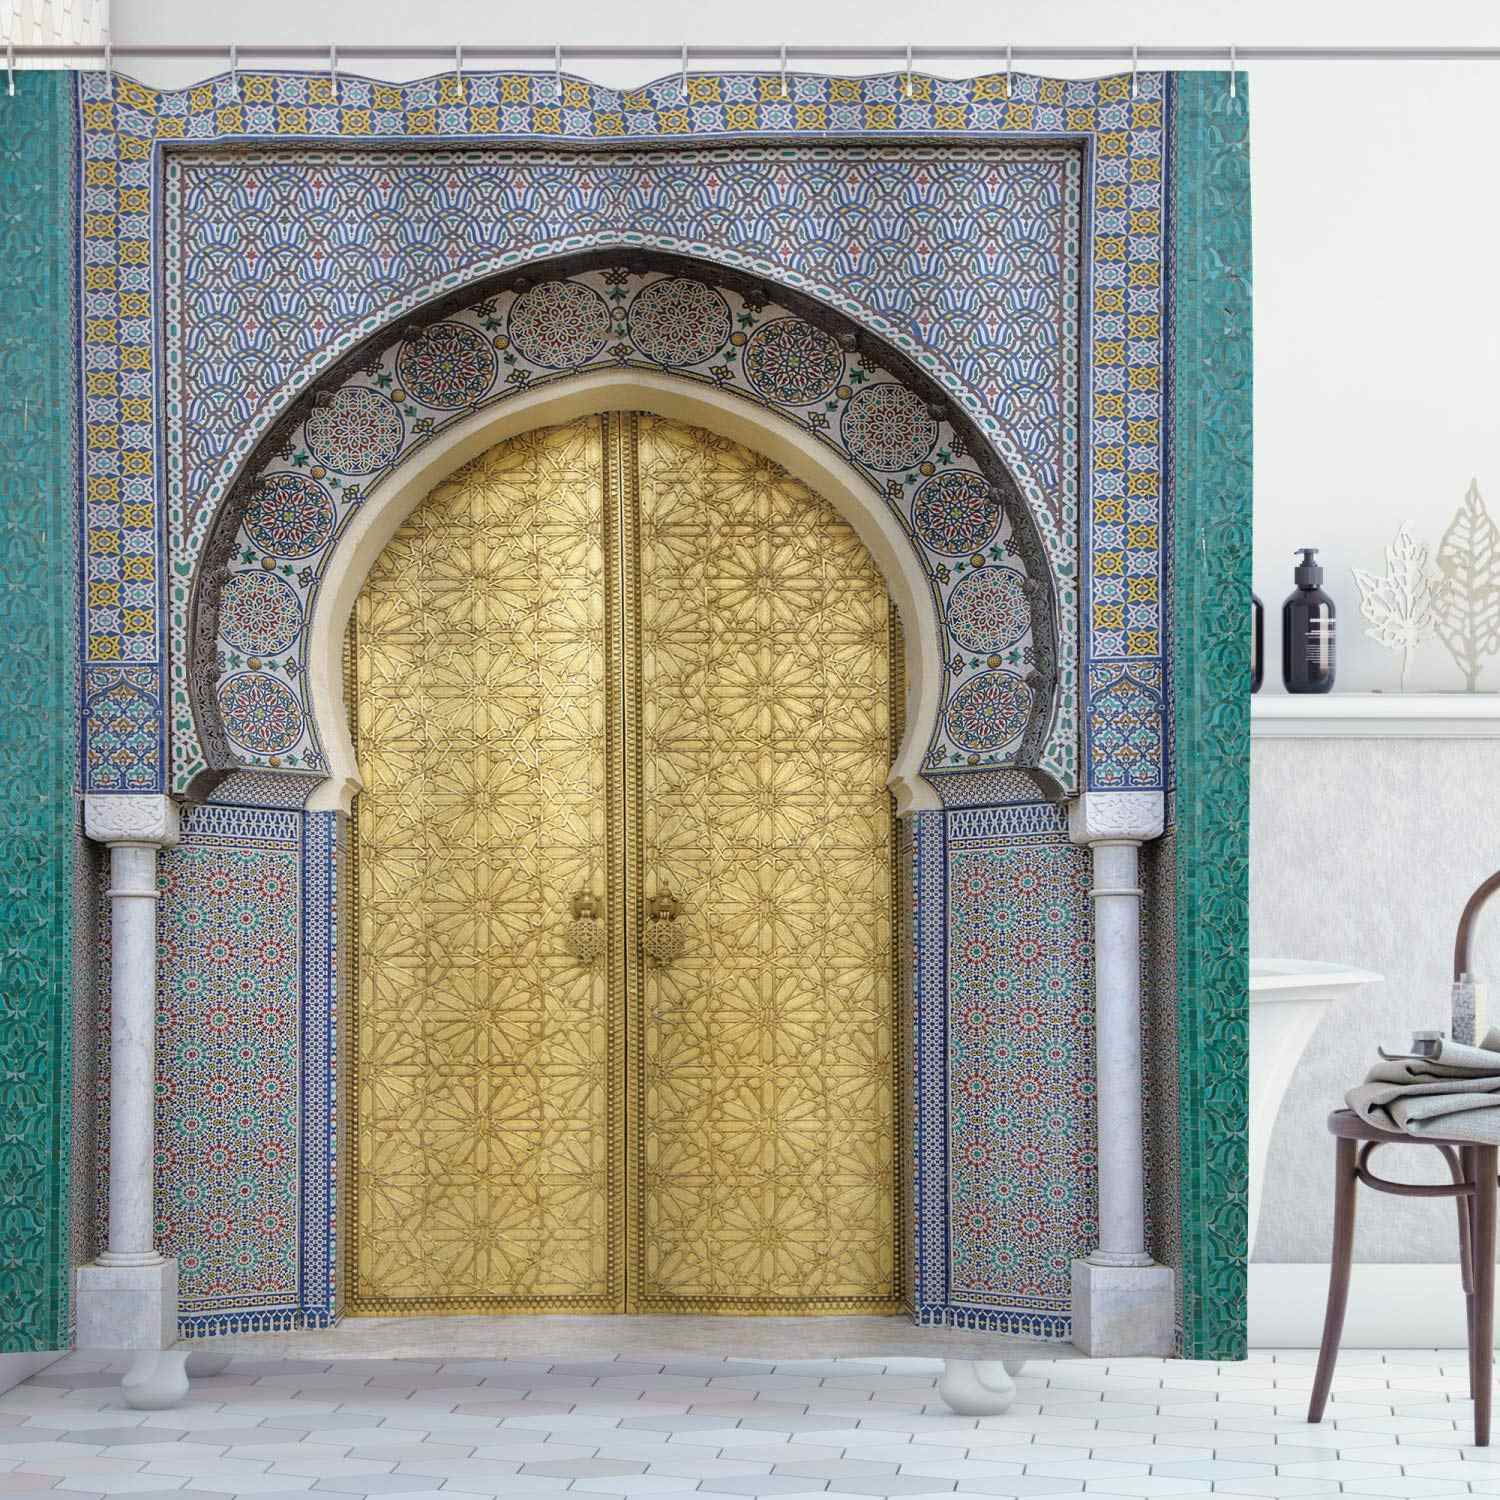 moroccan shower curtain antique doors morocco yellow doorknob ornamental carved intricate bathroom curtains decor set